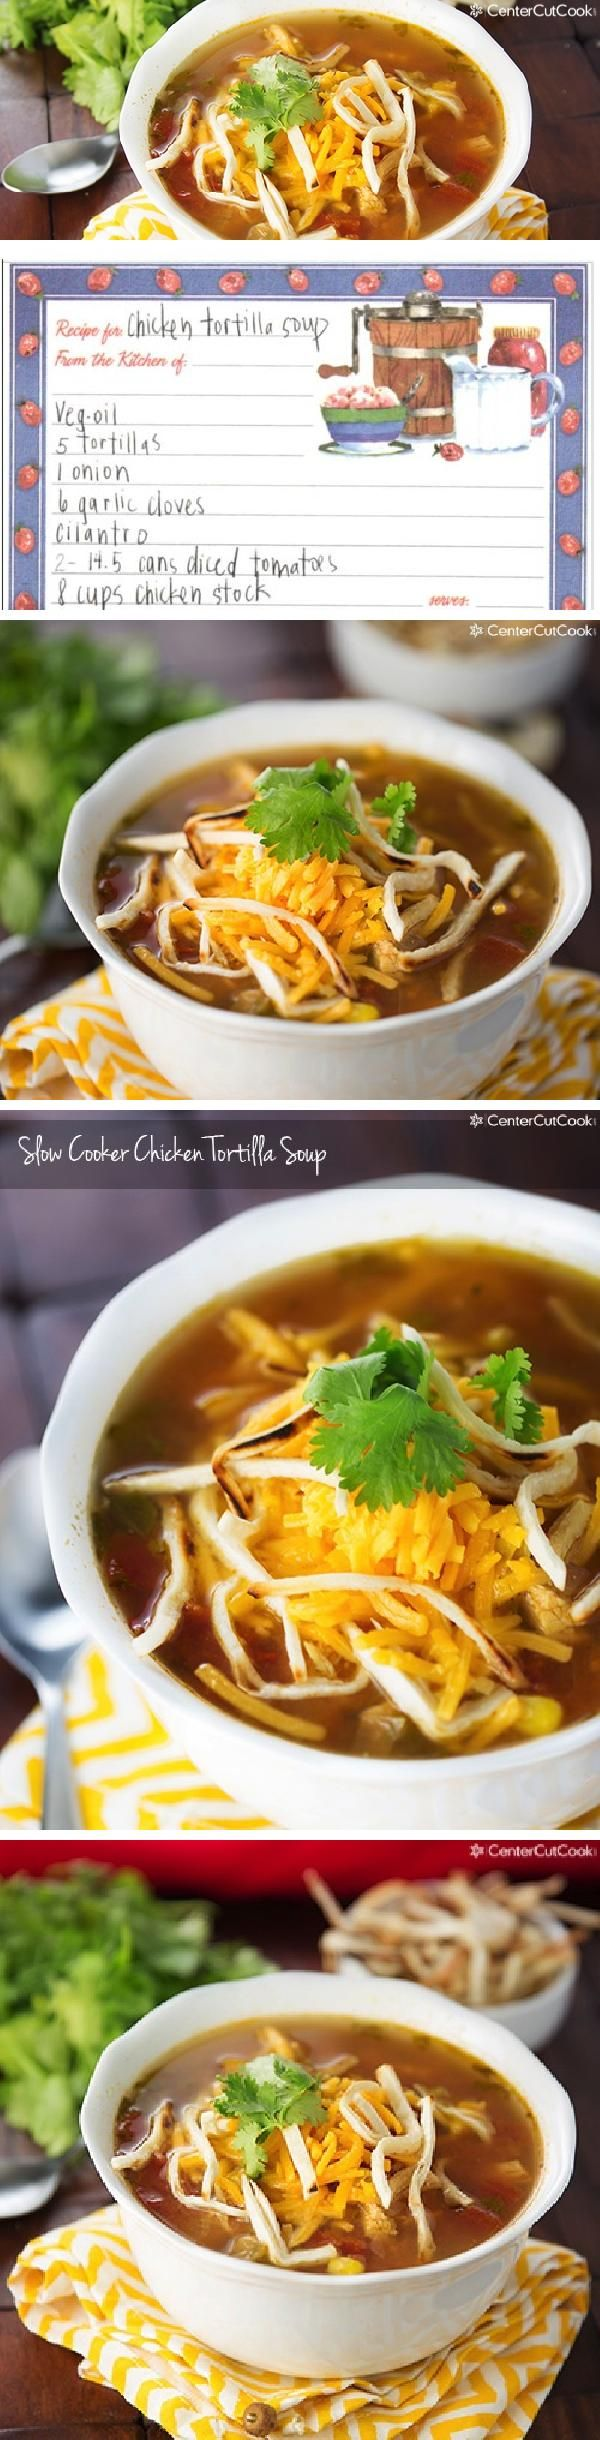 Super easy SLOW COOKER CHICKEN TORTILLA SOUP garnished with crispy tortilla strips and fresh sharp cheddar cheese.